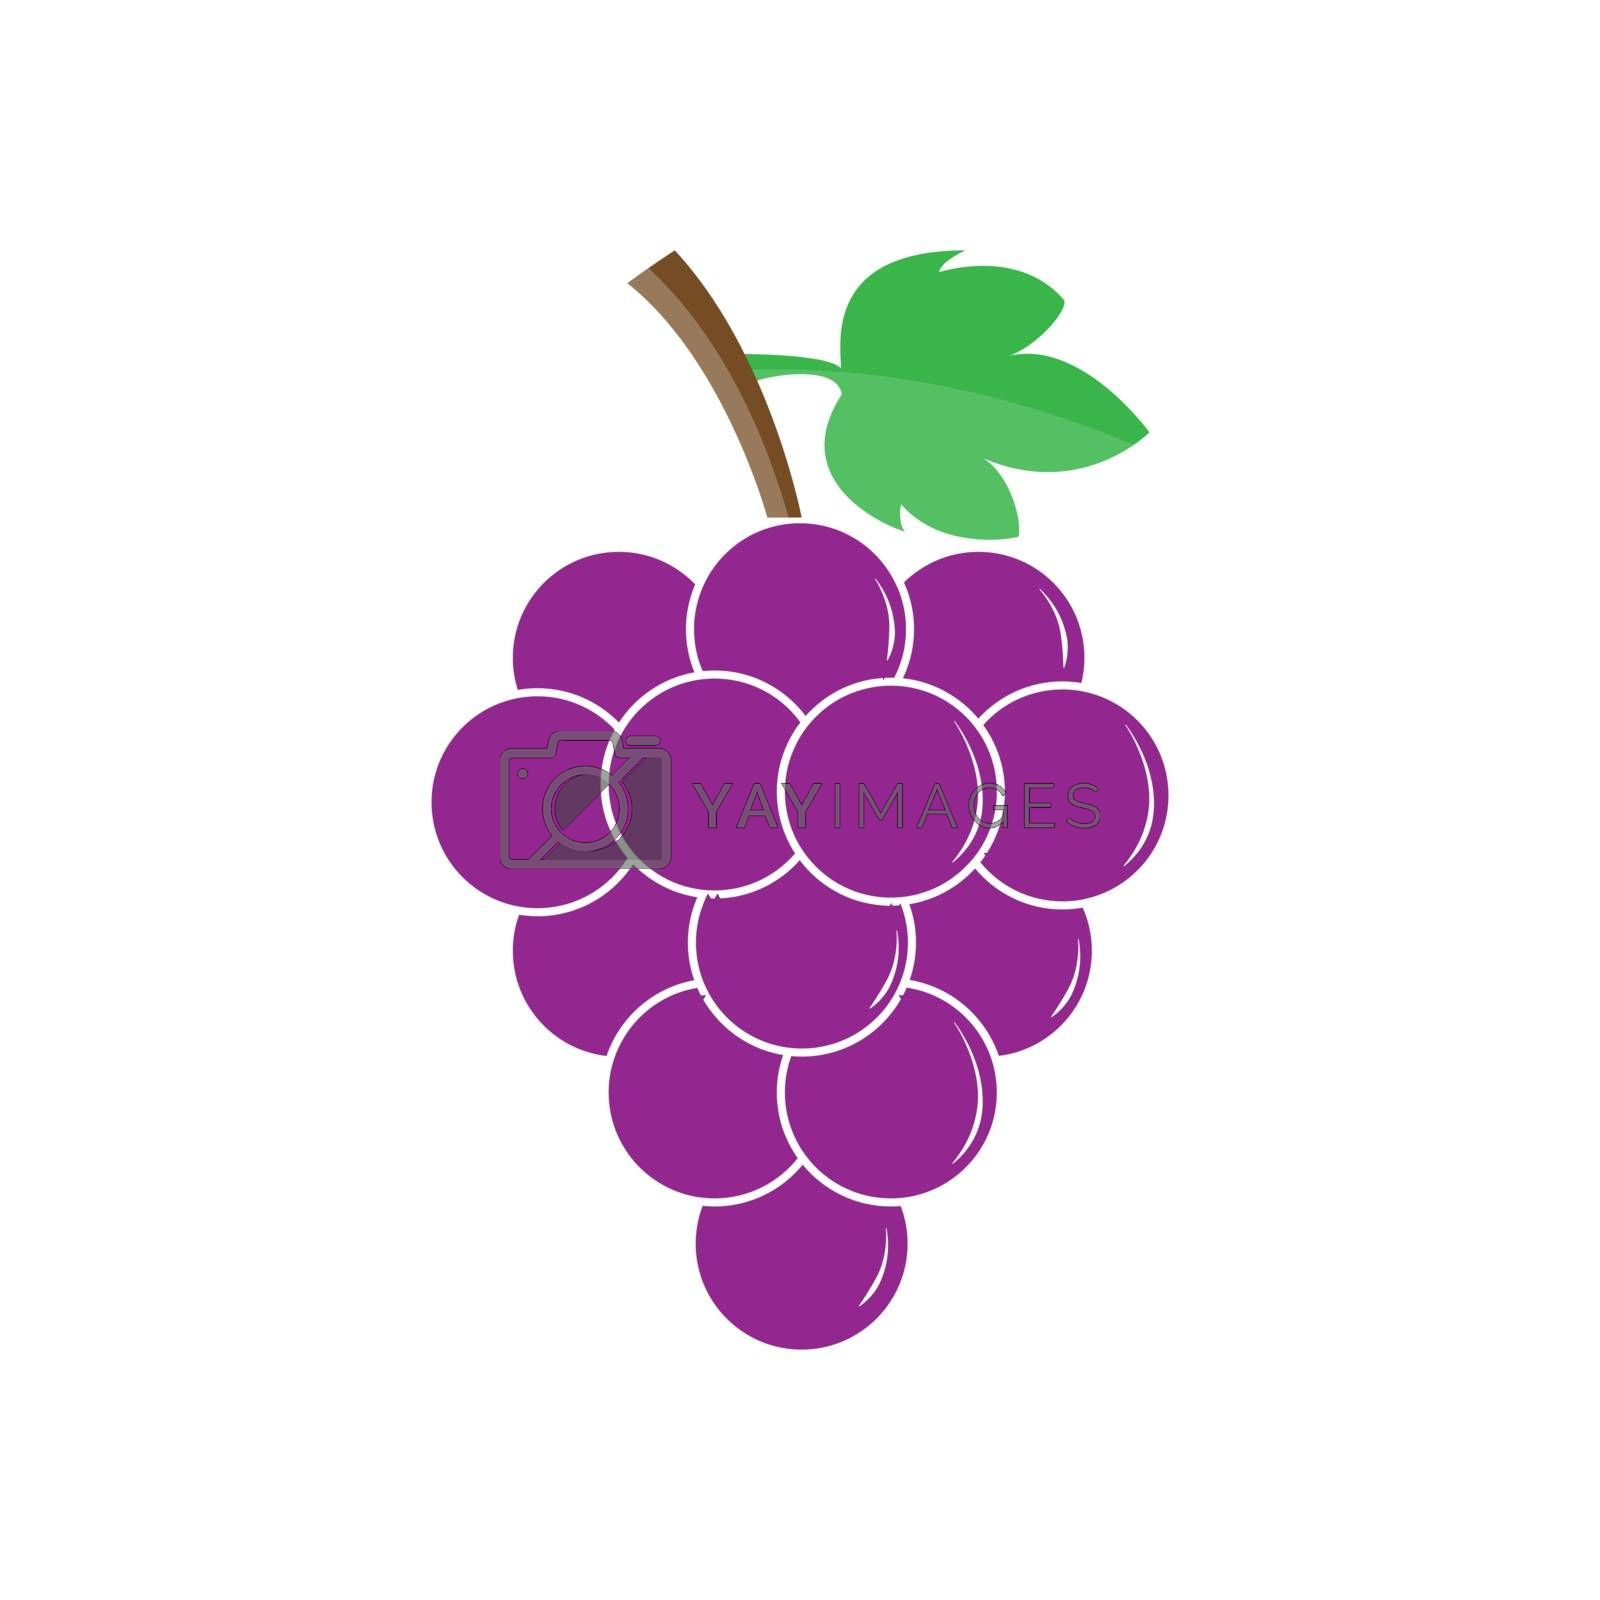 Bunch of grapes, color image, simple flat design